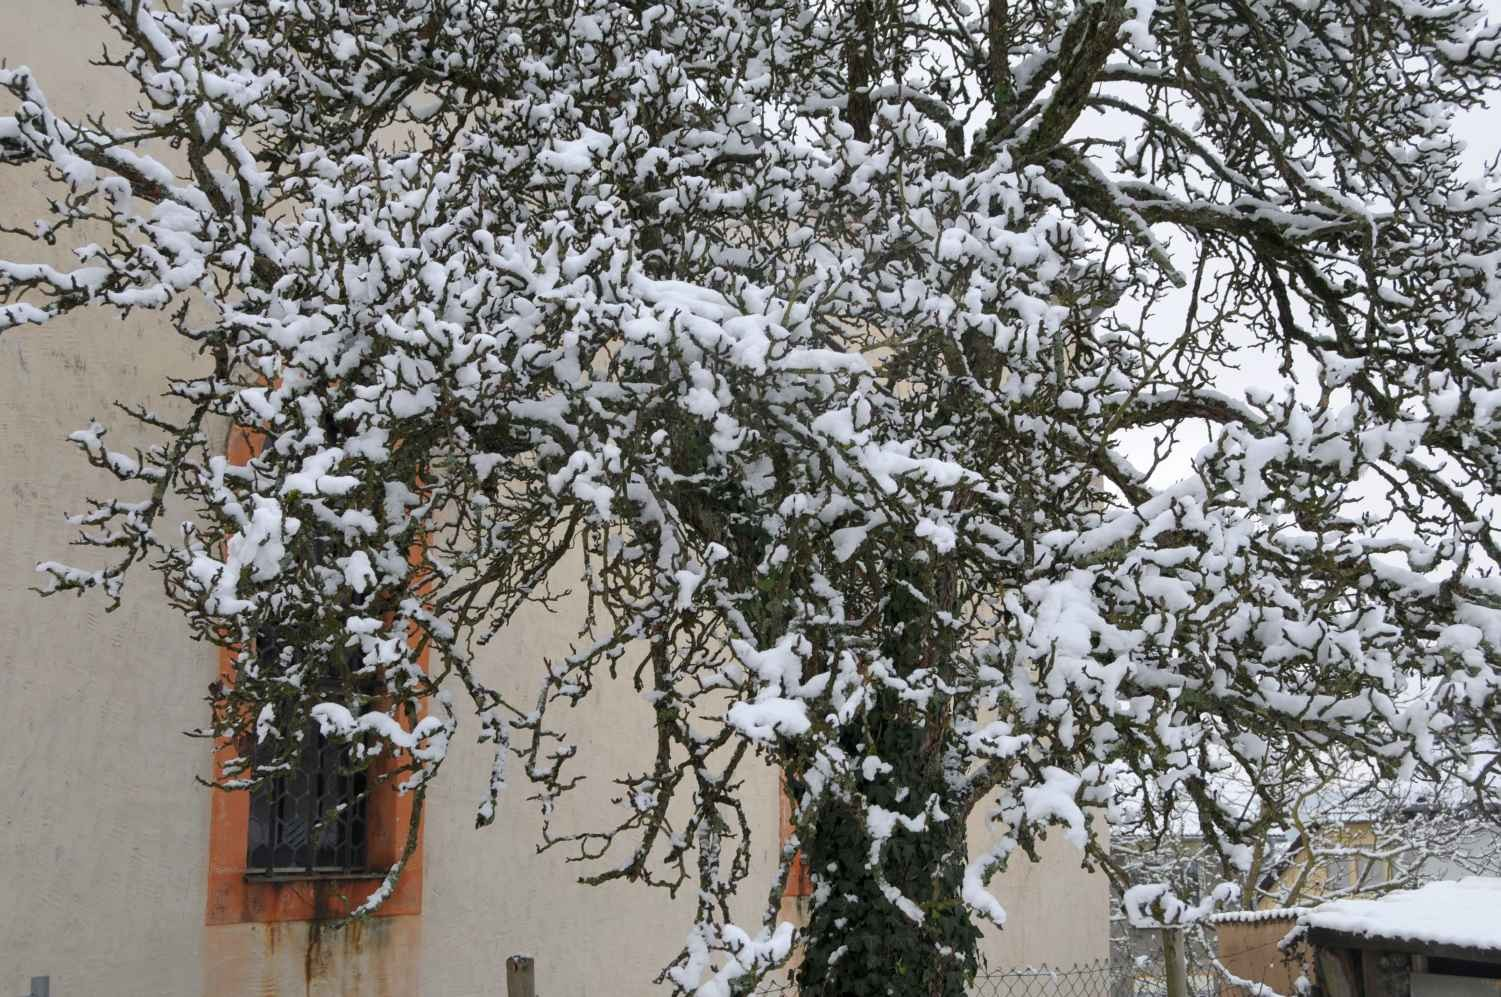 Winter in Korlingen, Februar 2015